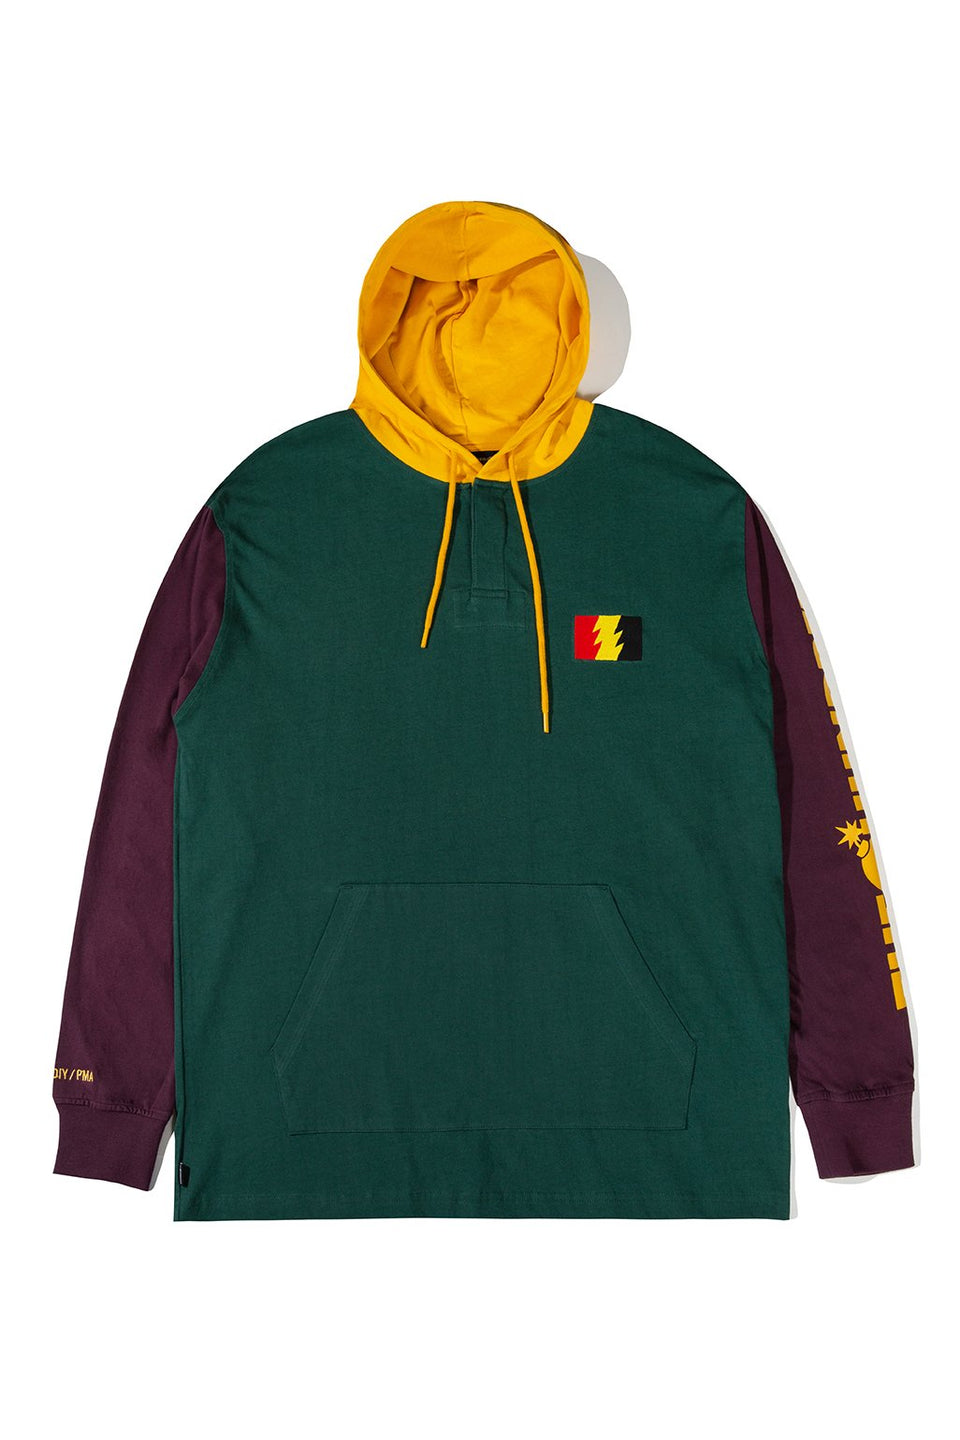 Miller Hooded L/S Shirt